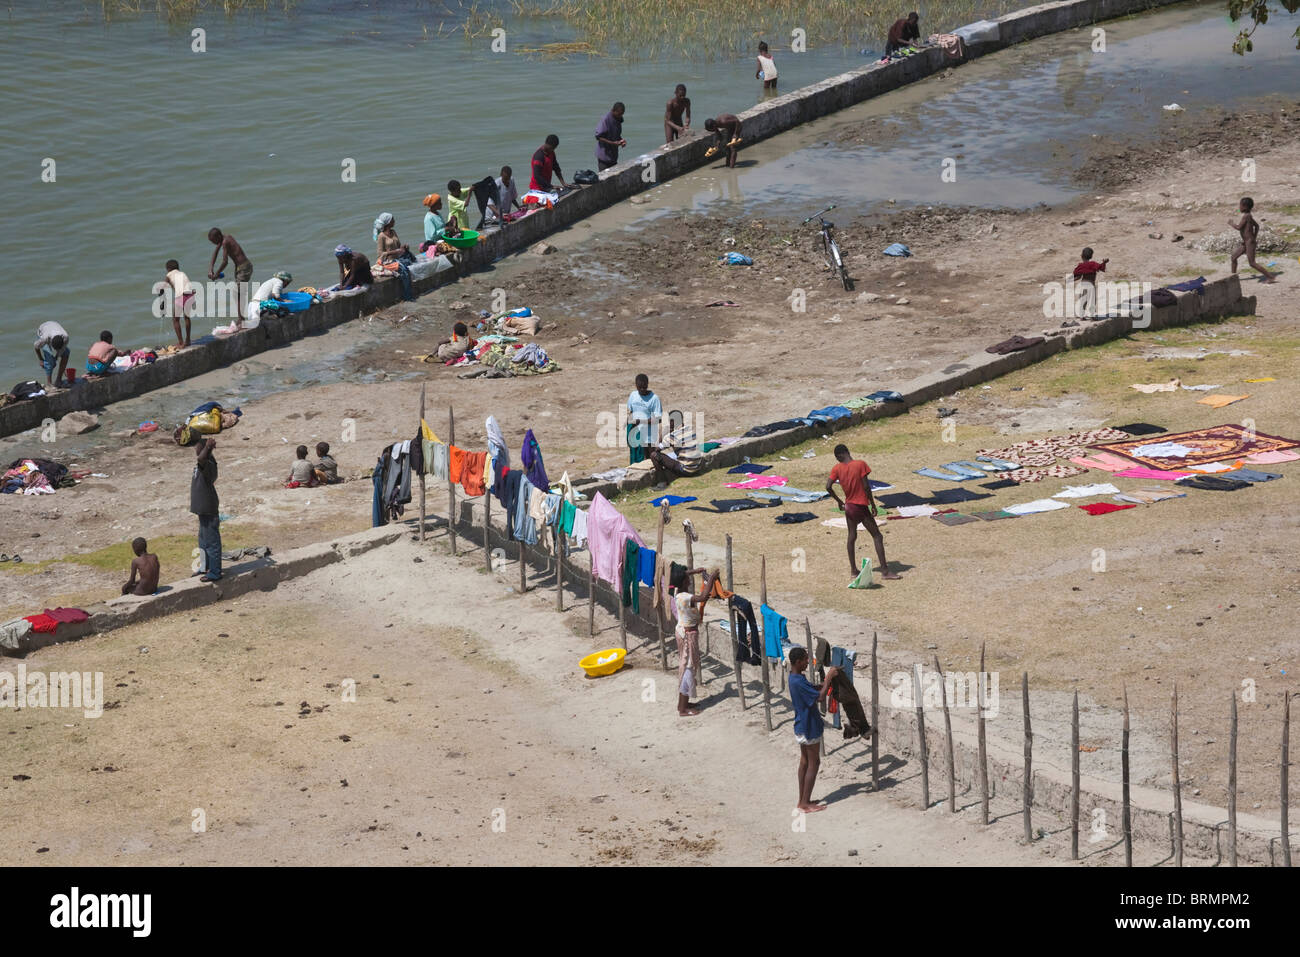 Locals gathered at Lake Awassa to do their washing with colourful garments hanging on a fence to dry - Stock Image